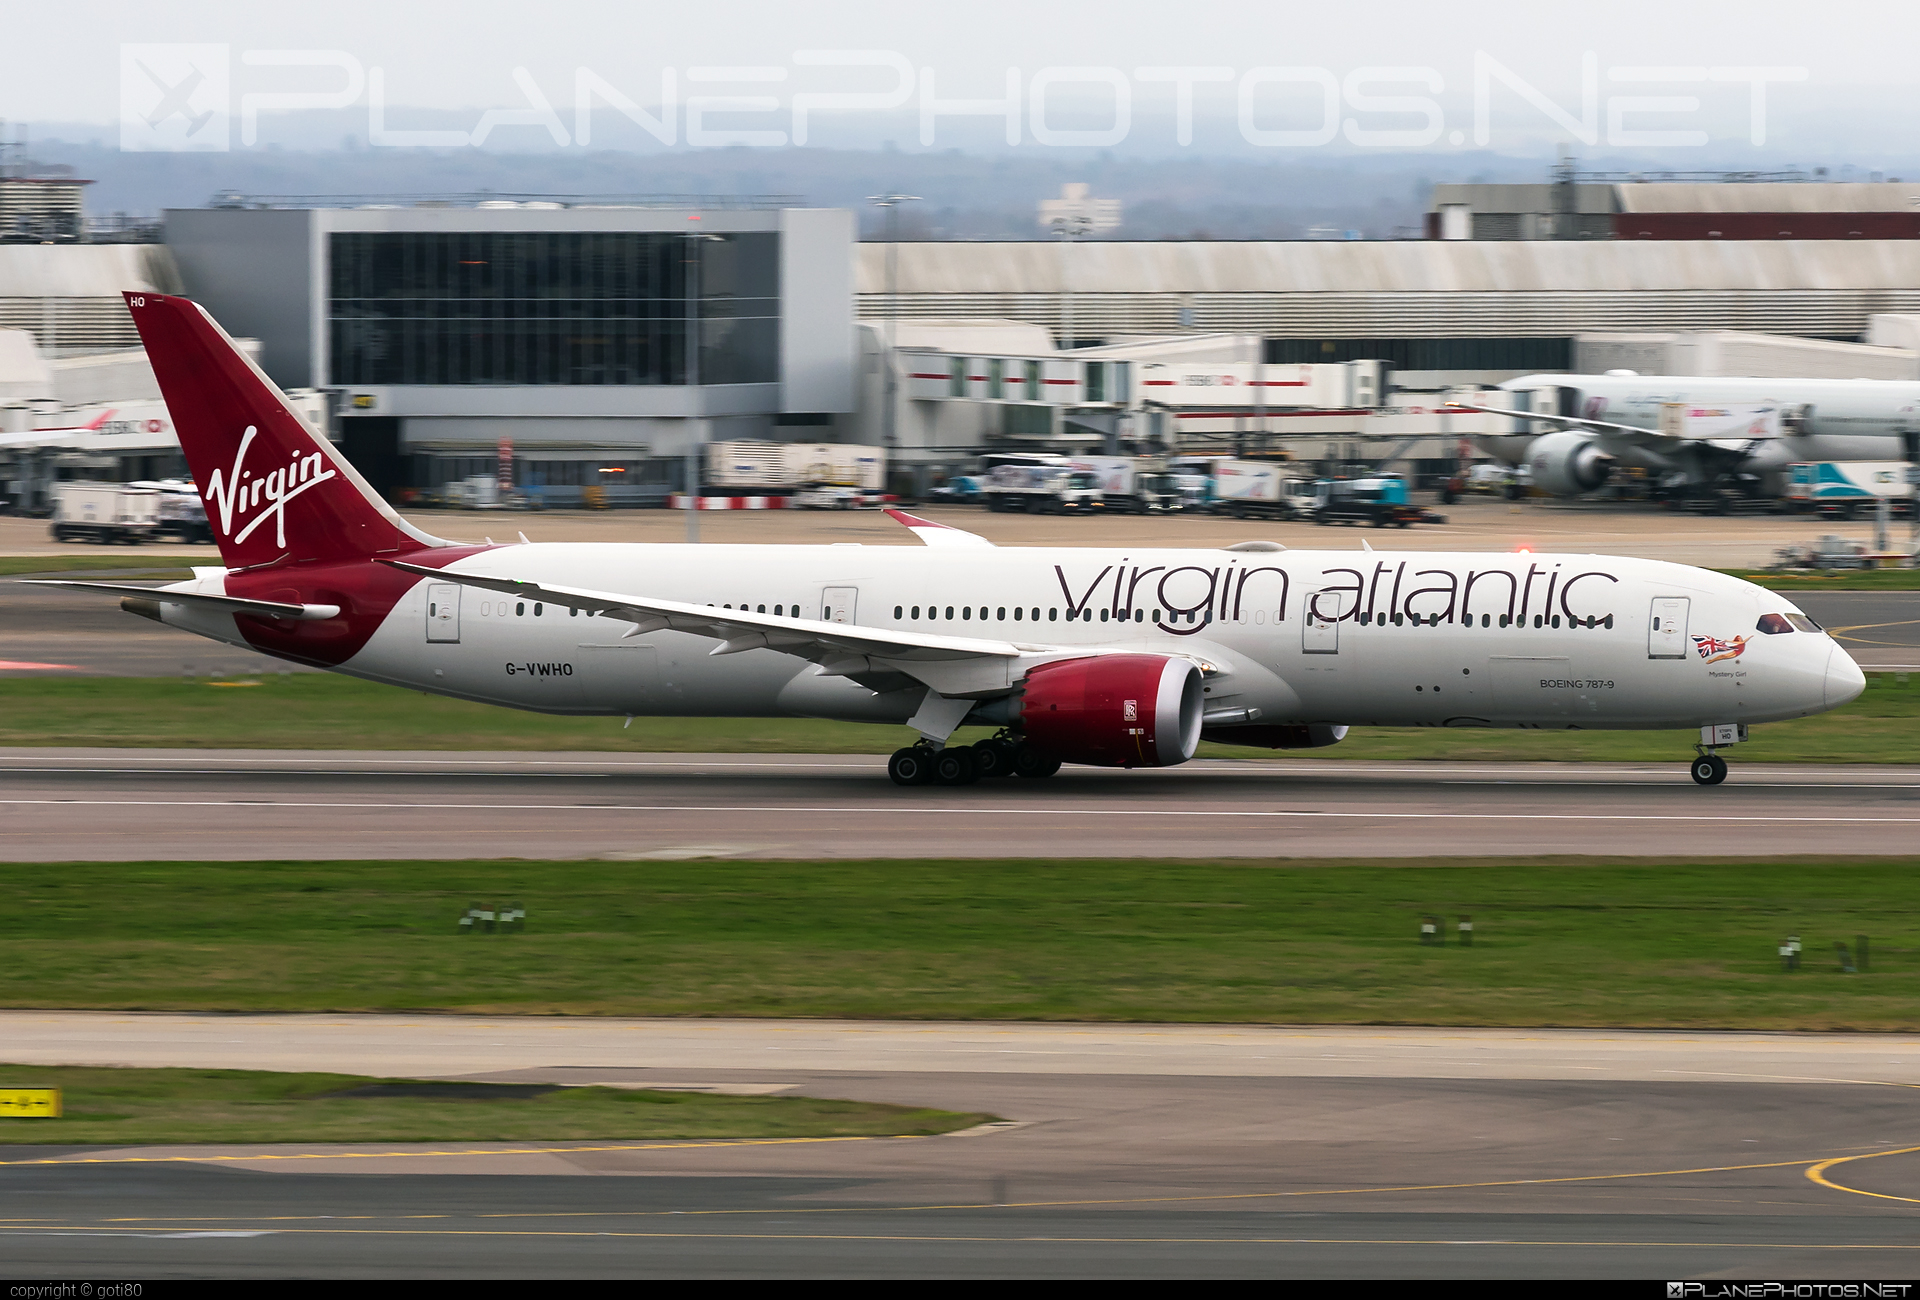 Boeing 787-9 Dreamliner - G-VWHO operated by Virgin Atlantic Airways #b787 #boeing #boeing787 #dreamliner #virginatlantic #virginatlanticairways